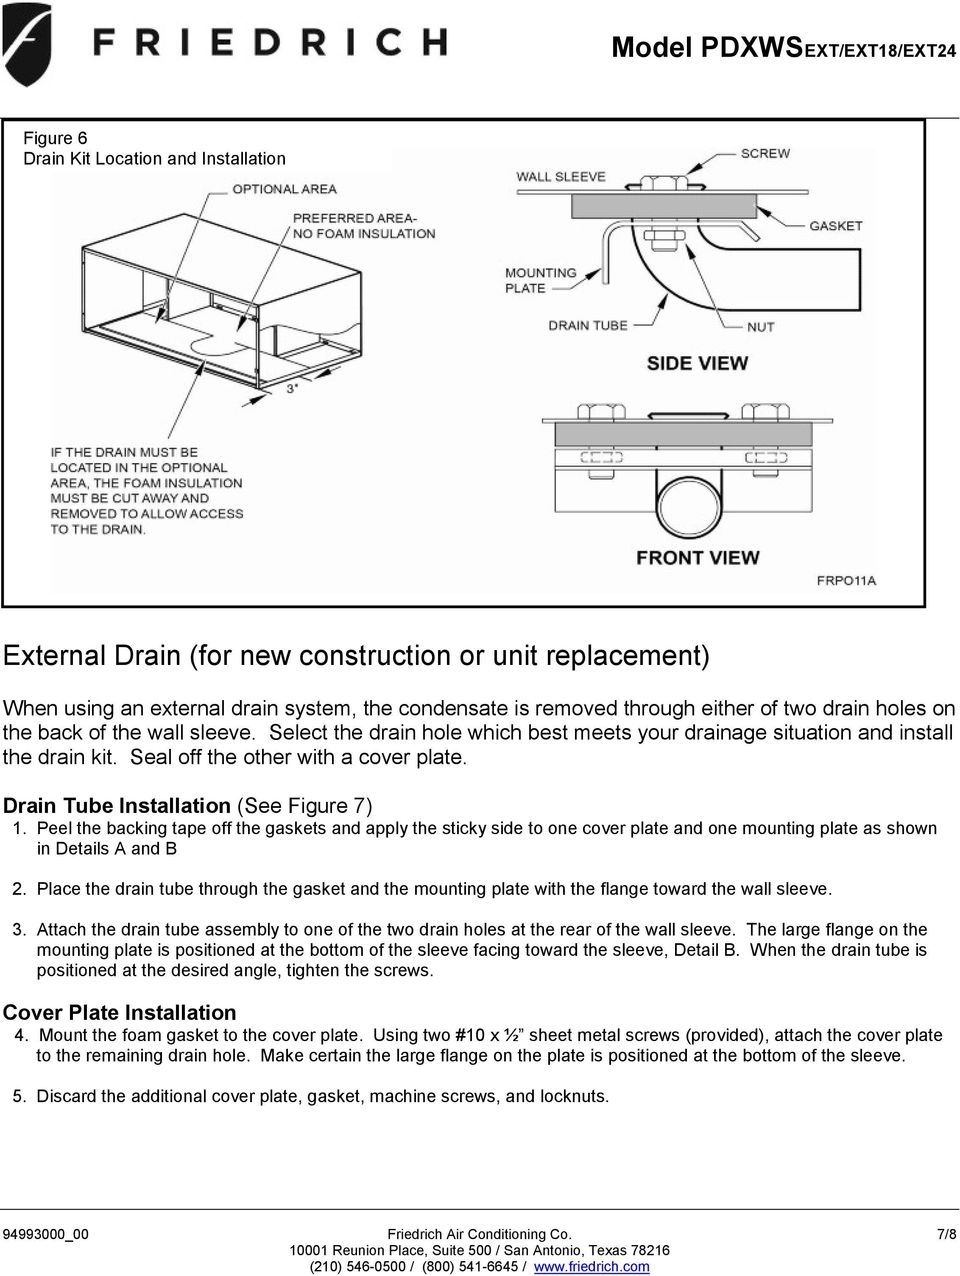 Drain Tube Installation (See Figure 7) 1. Peel the backing tape off the gaskets and apply the sticky side to one cover plate and one mounting plate as shown in Details A and B 2.